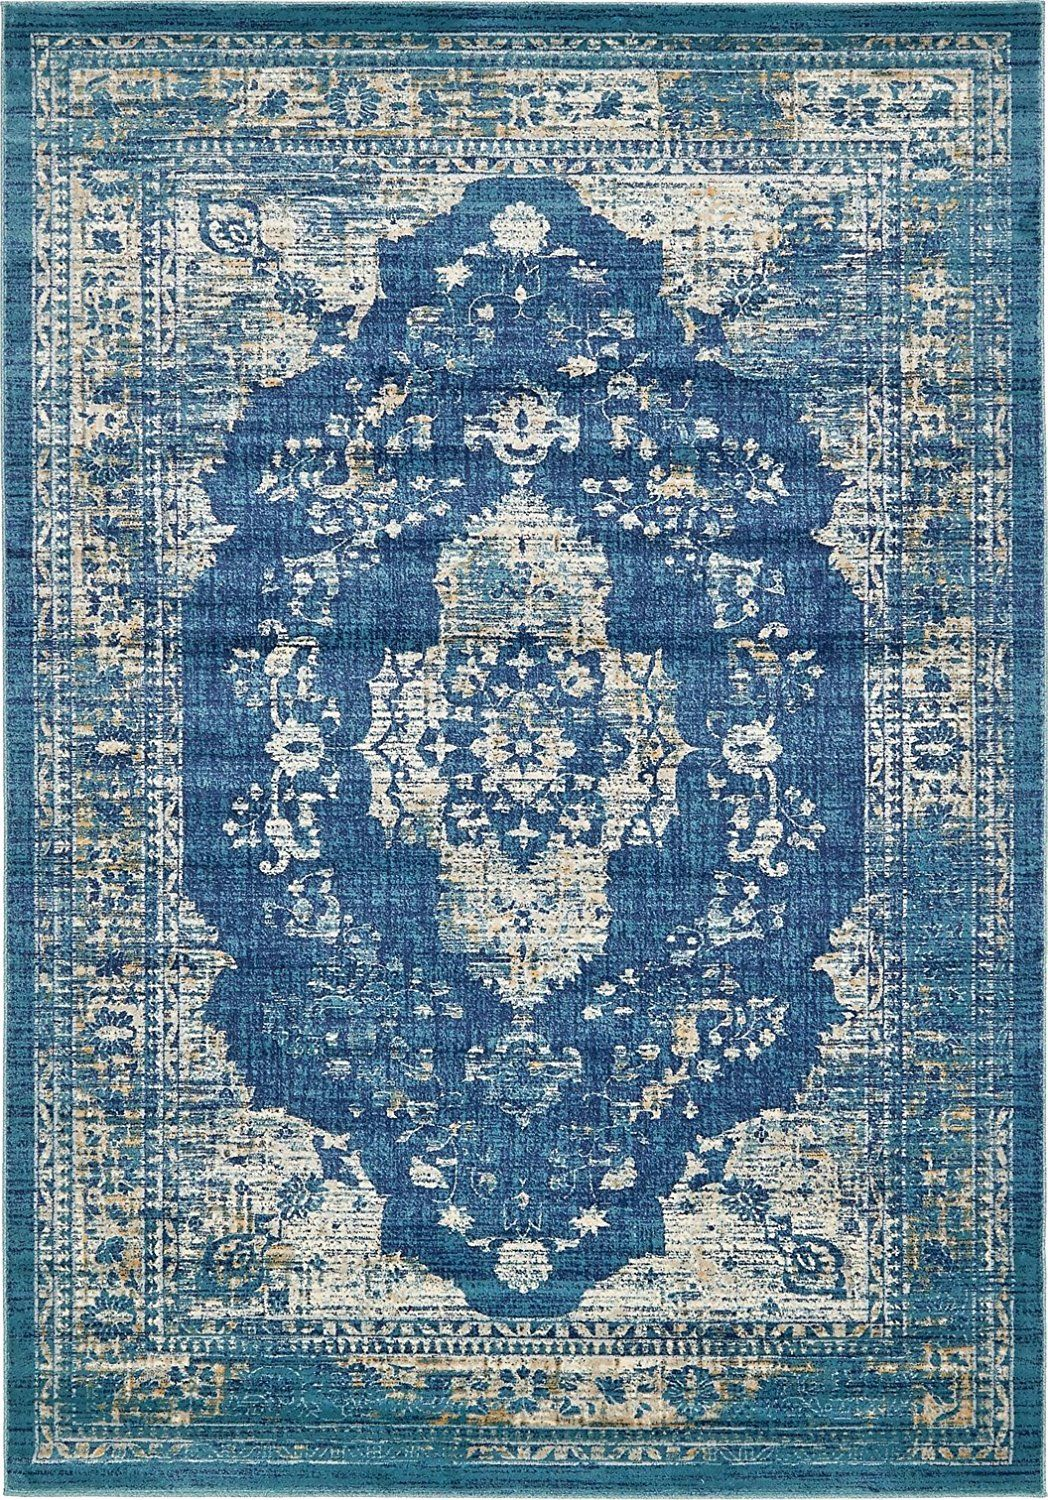 Amazon Com A2z Rug Navy Blue 7 39 X 10 39 Ft St Martin Collection Area Rug Vintage Inspired Overdyed Perfect For Navy Blue Rug Area Rugs Carpet Design